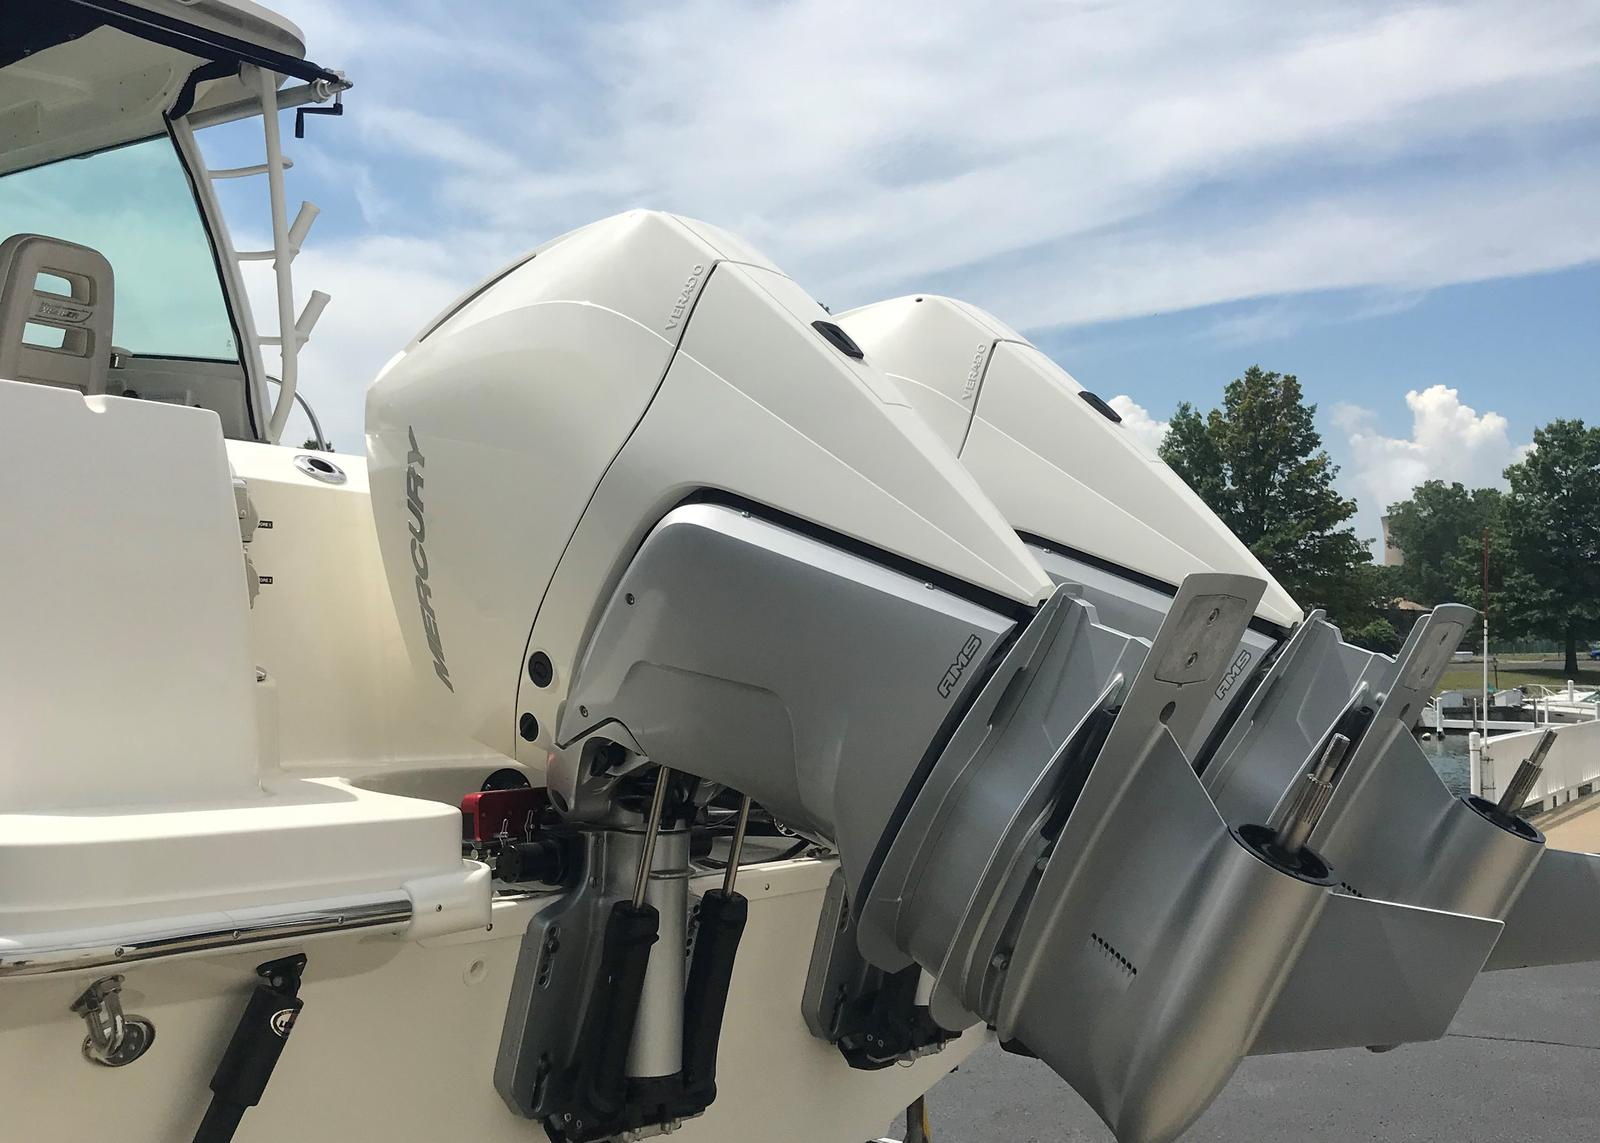 2019 Boston Whaler boat for sale, model of the boat is 315 Conquest & Image # 11 of 11